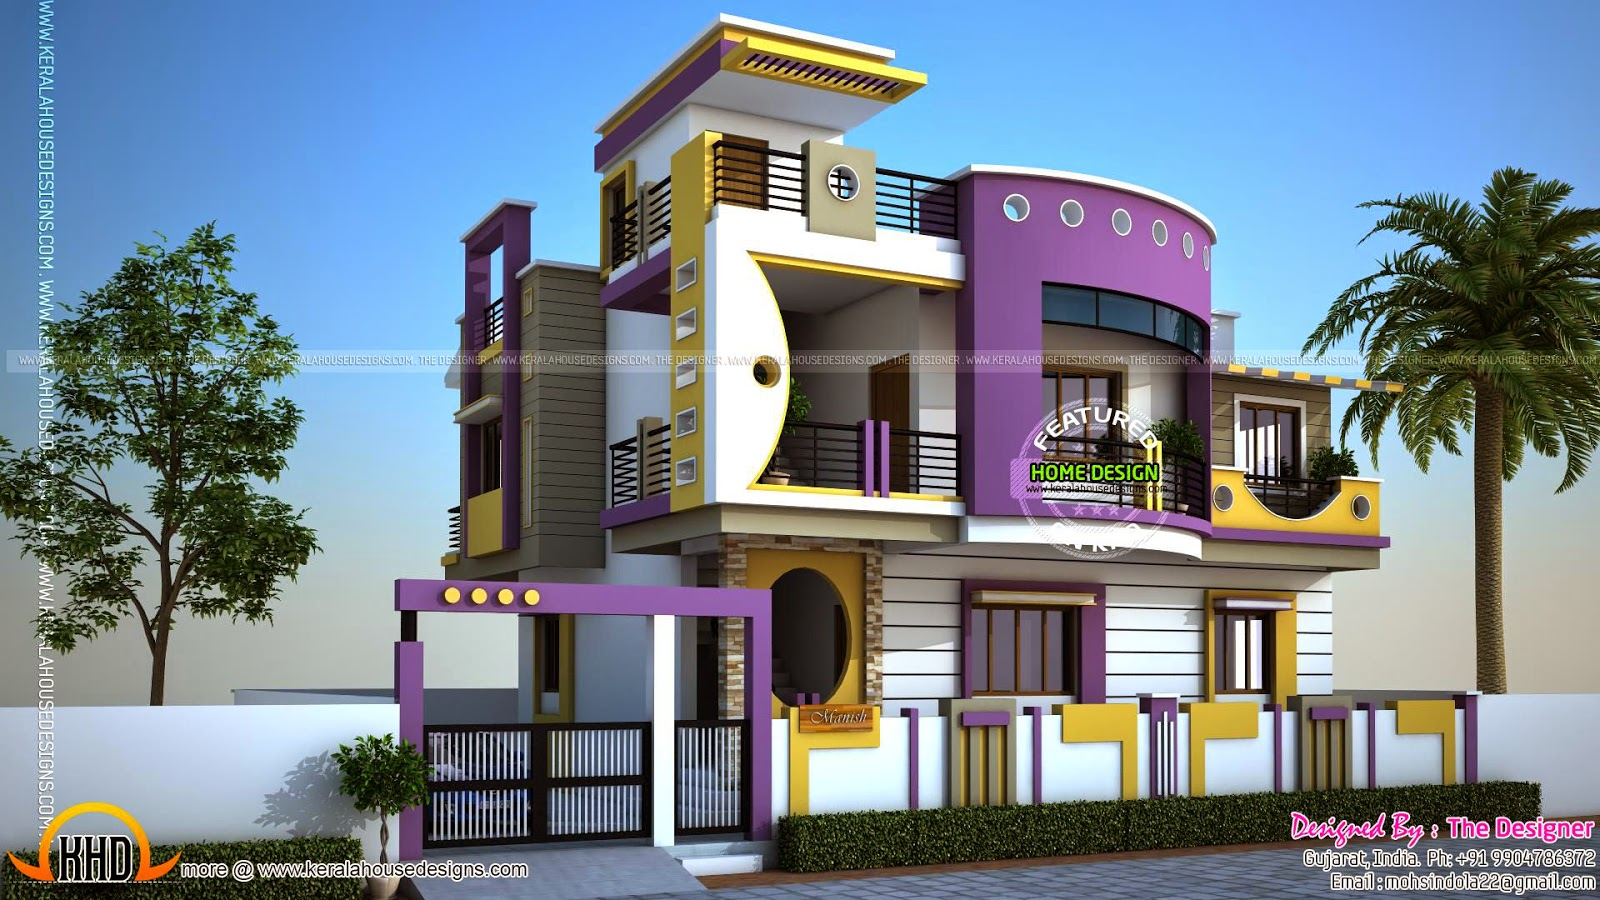 House exterior designs in contemporary style kerala home for Small home outside design